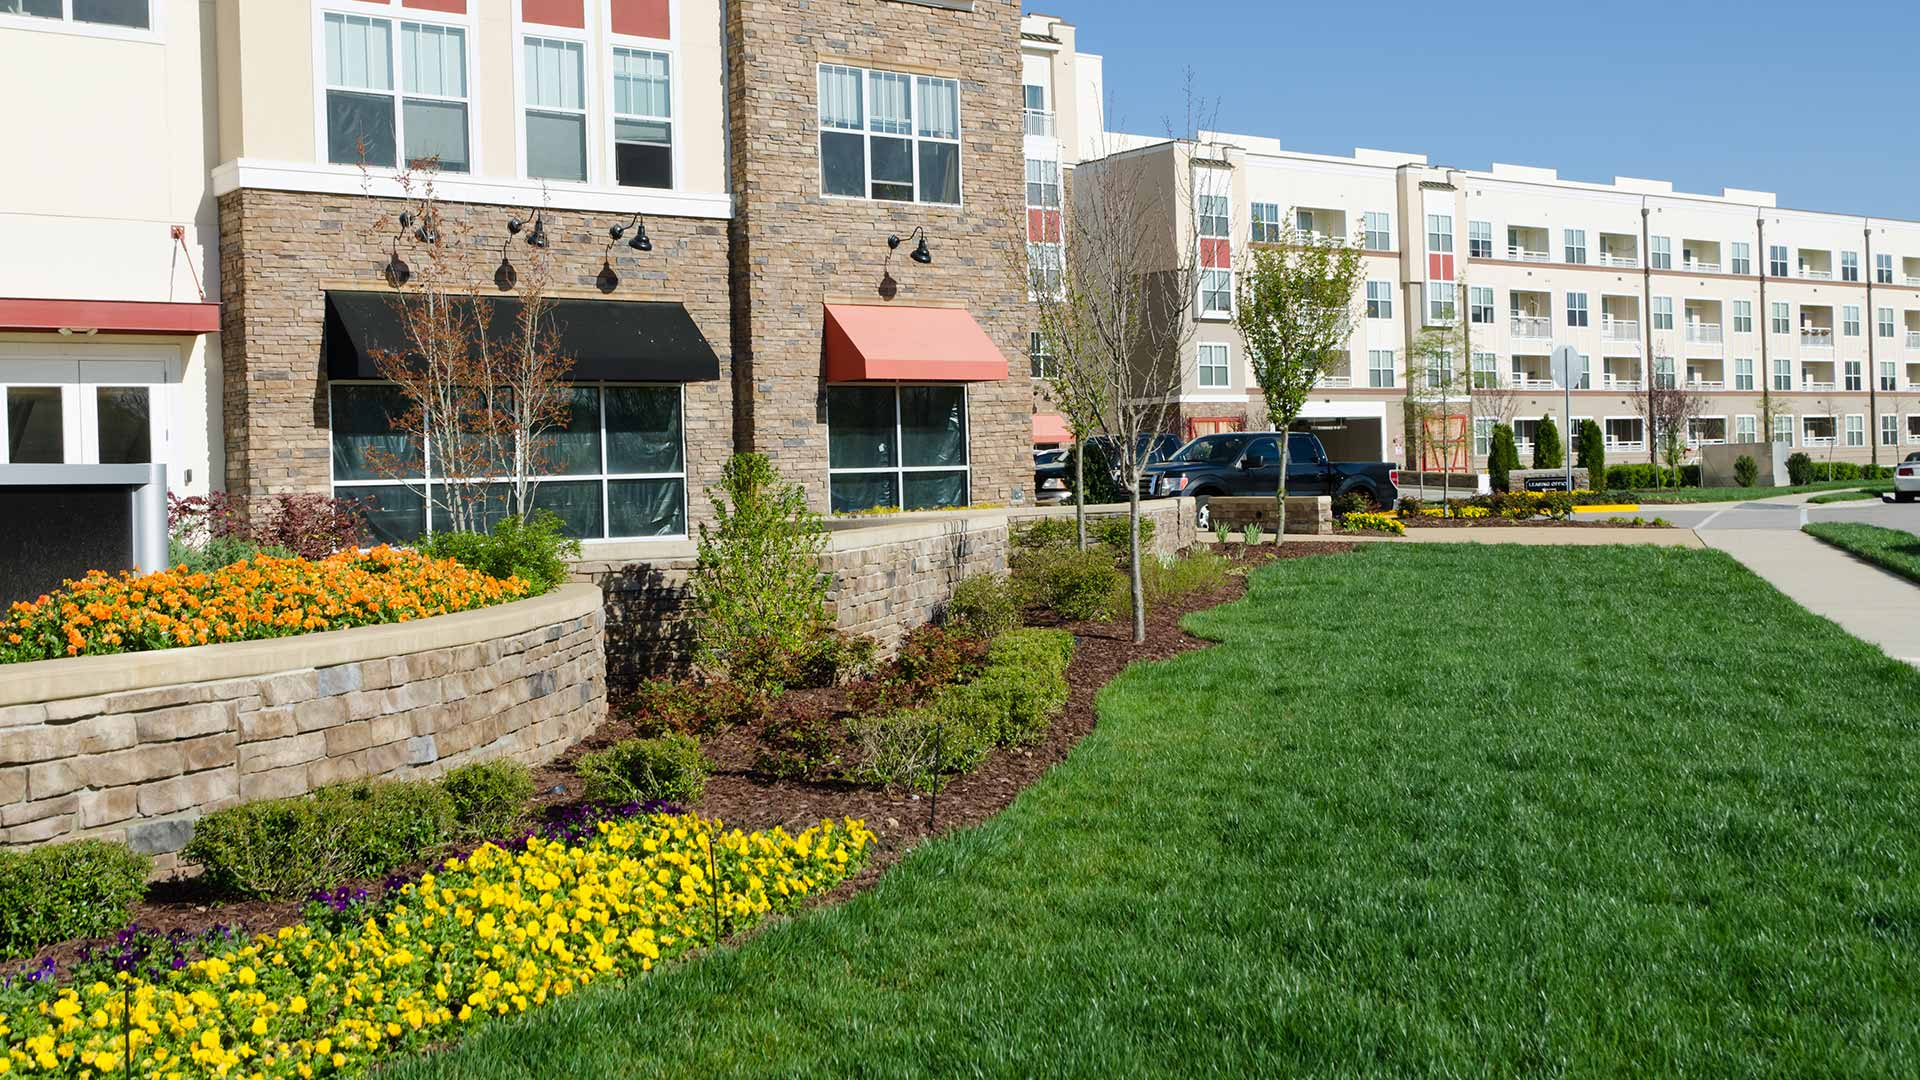 Commercial lawn care and landscaping in Macomb, MI.